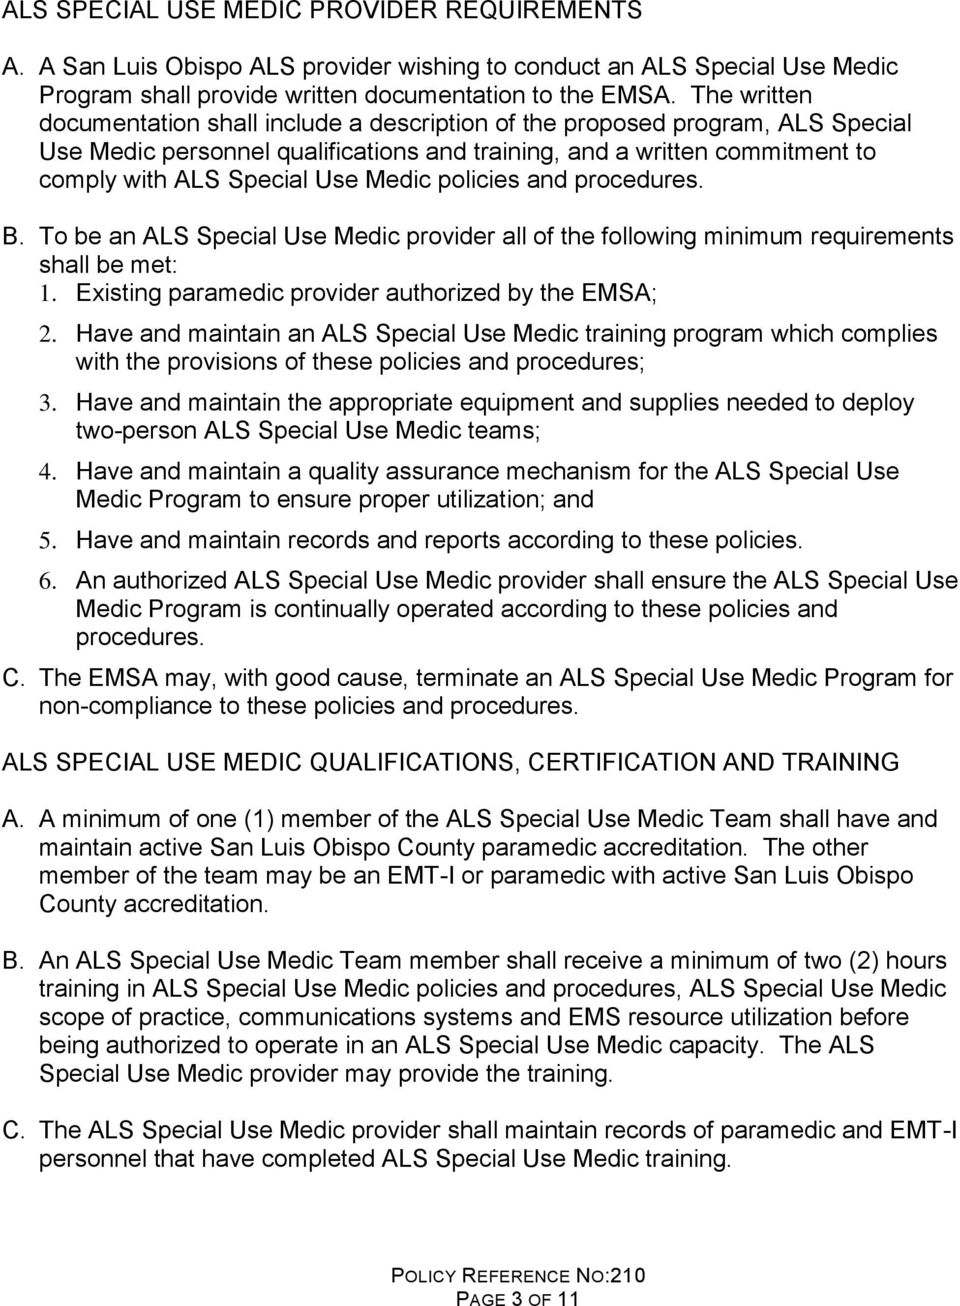 Medic policies and procedures. B. To be an ALS Special Use Medic provider all of the following minimum requirements shall be met: 1. Existing paramedic provider authorized by the EMSA; 2.